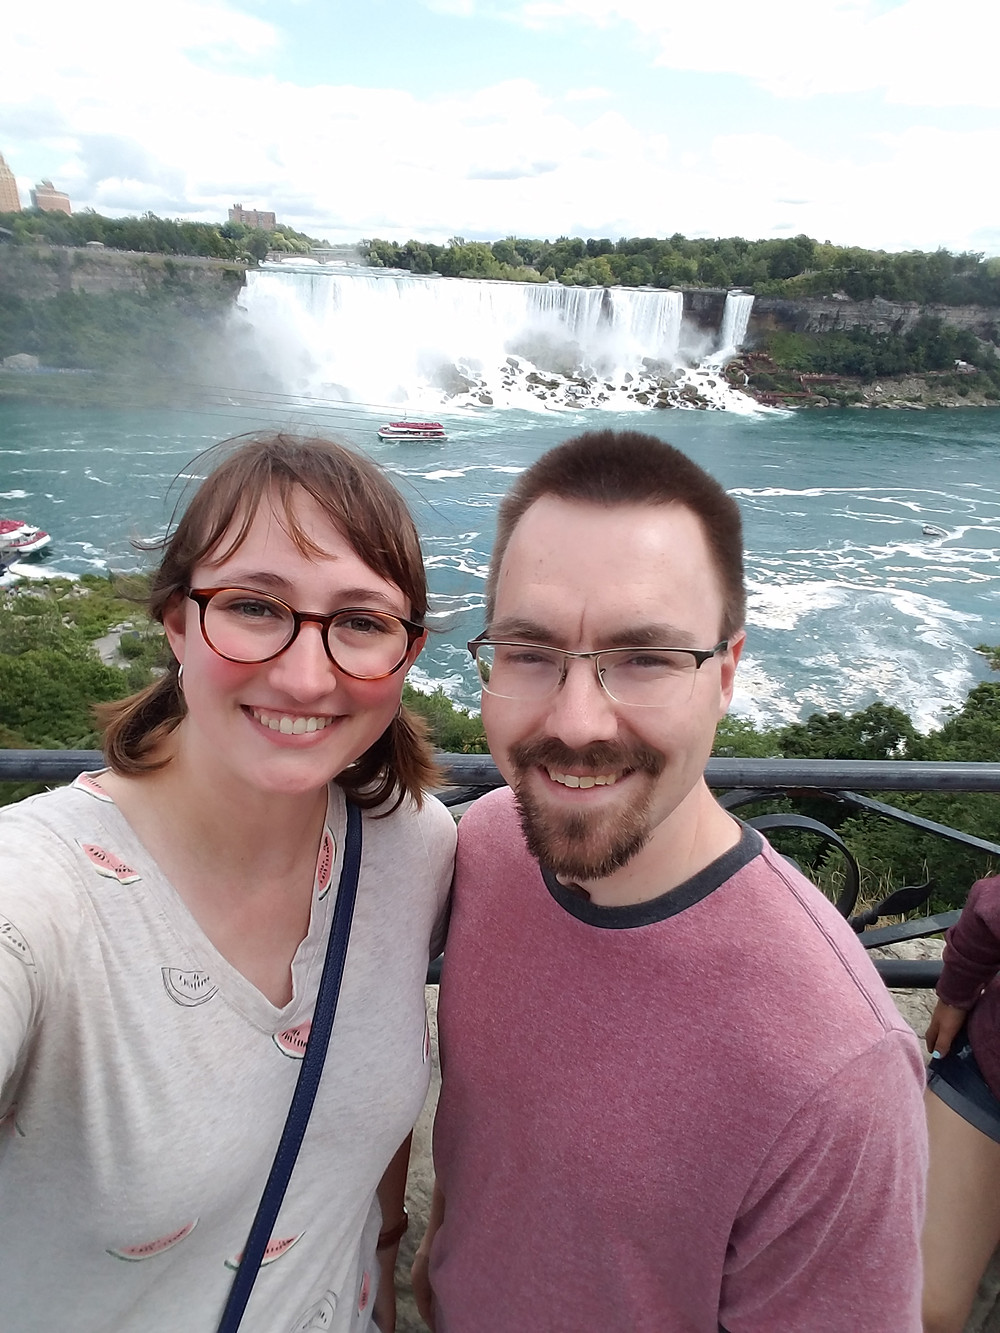 Selfie with American Falls at Niagara Falls